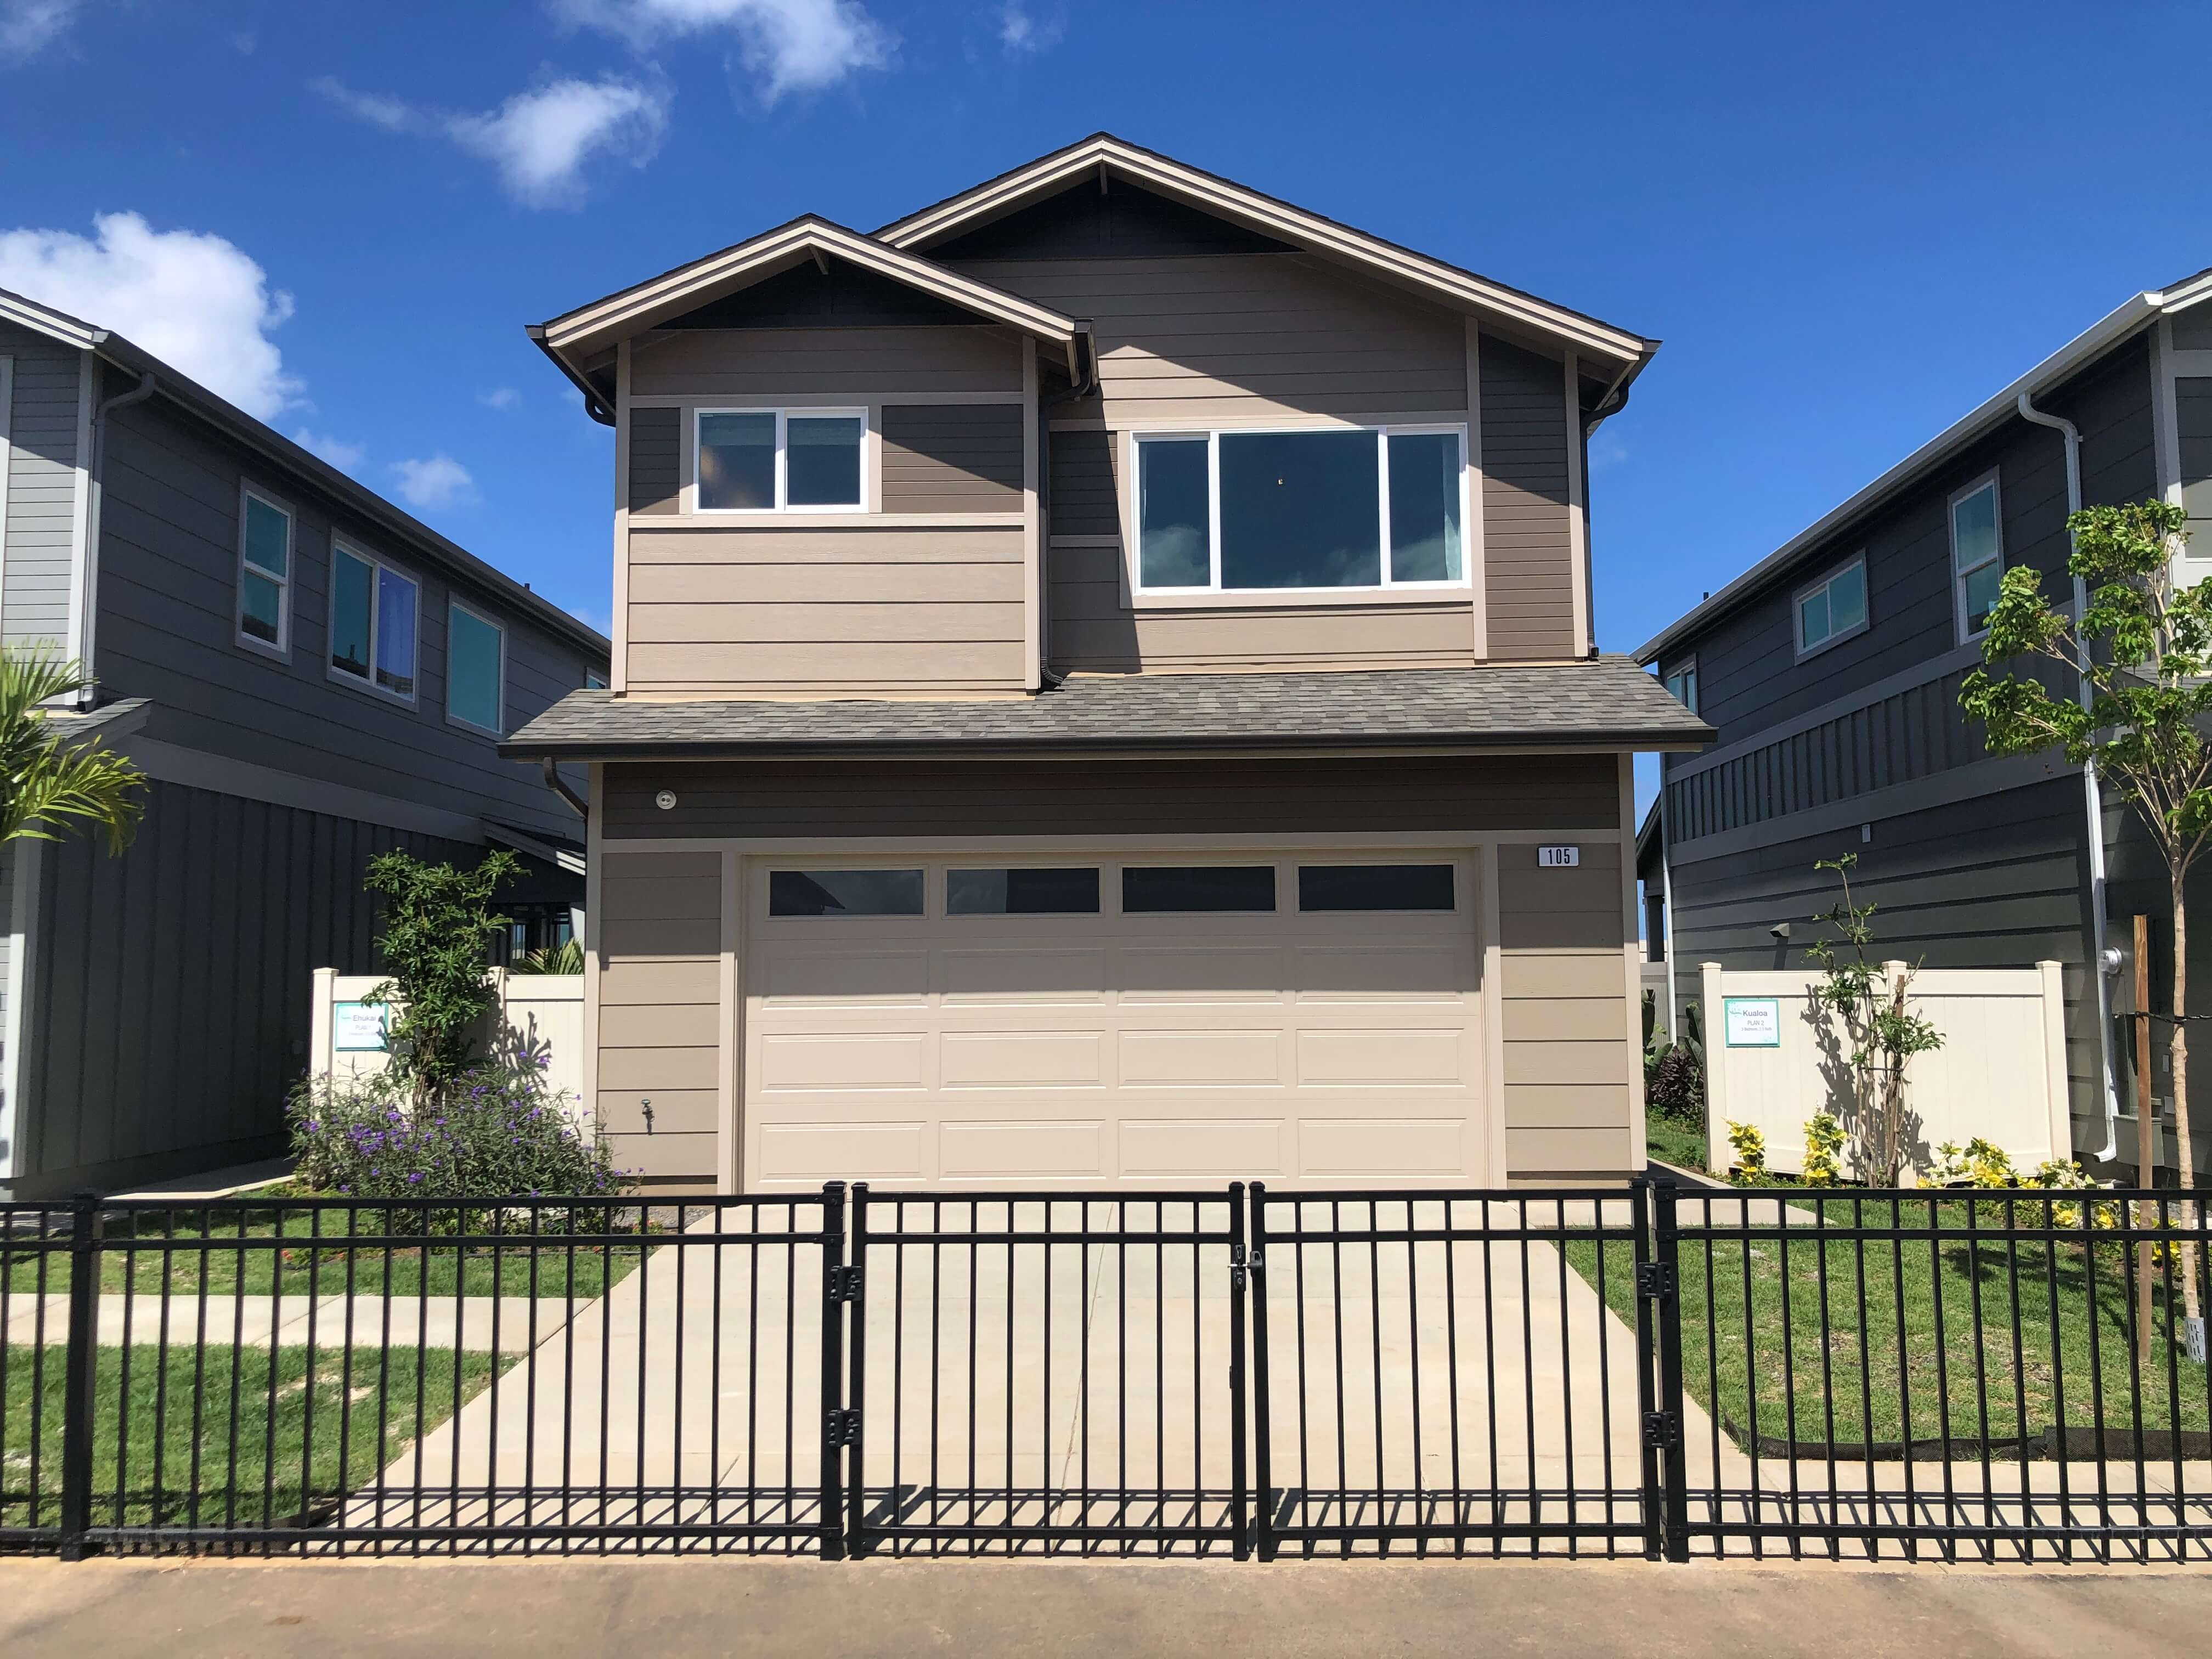 northpark by gentry homes for sale in ewa beach